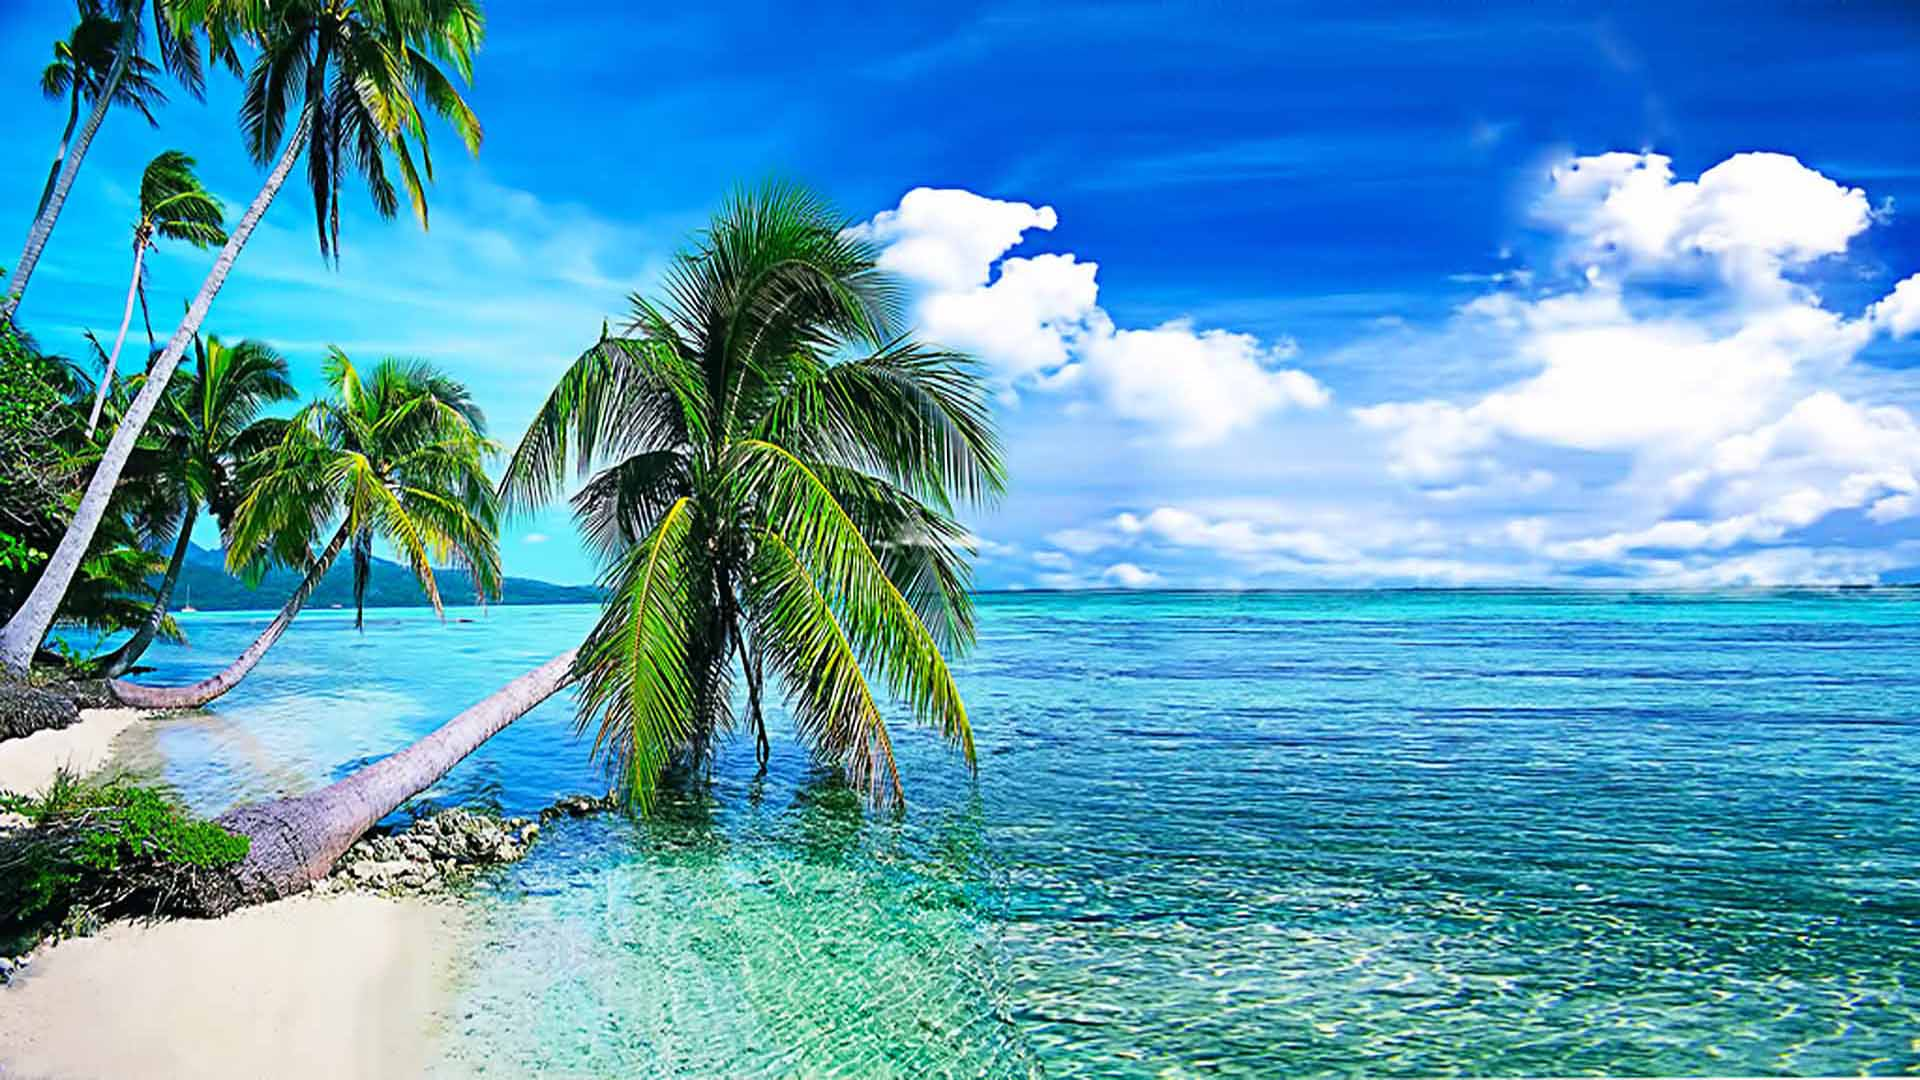 Hd Tropical Island Beach Paradise Wallpapers And Backgrounds: Tropical Beach Desktop Wallpaper